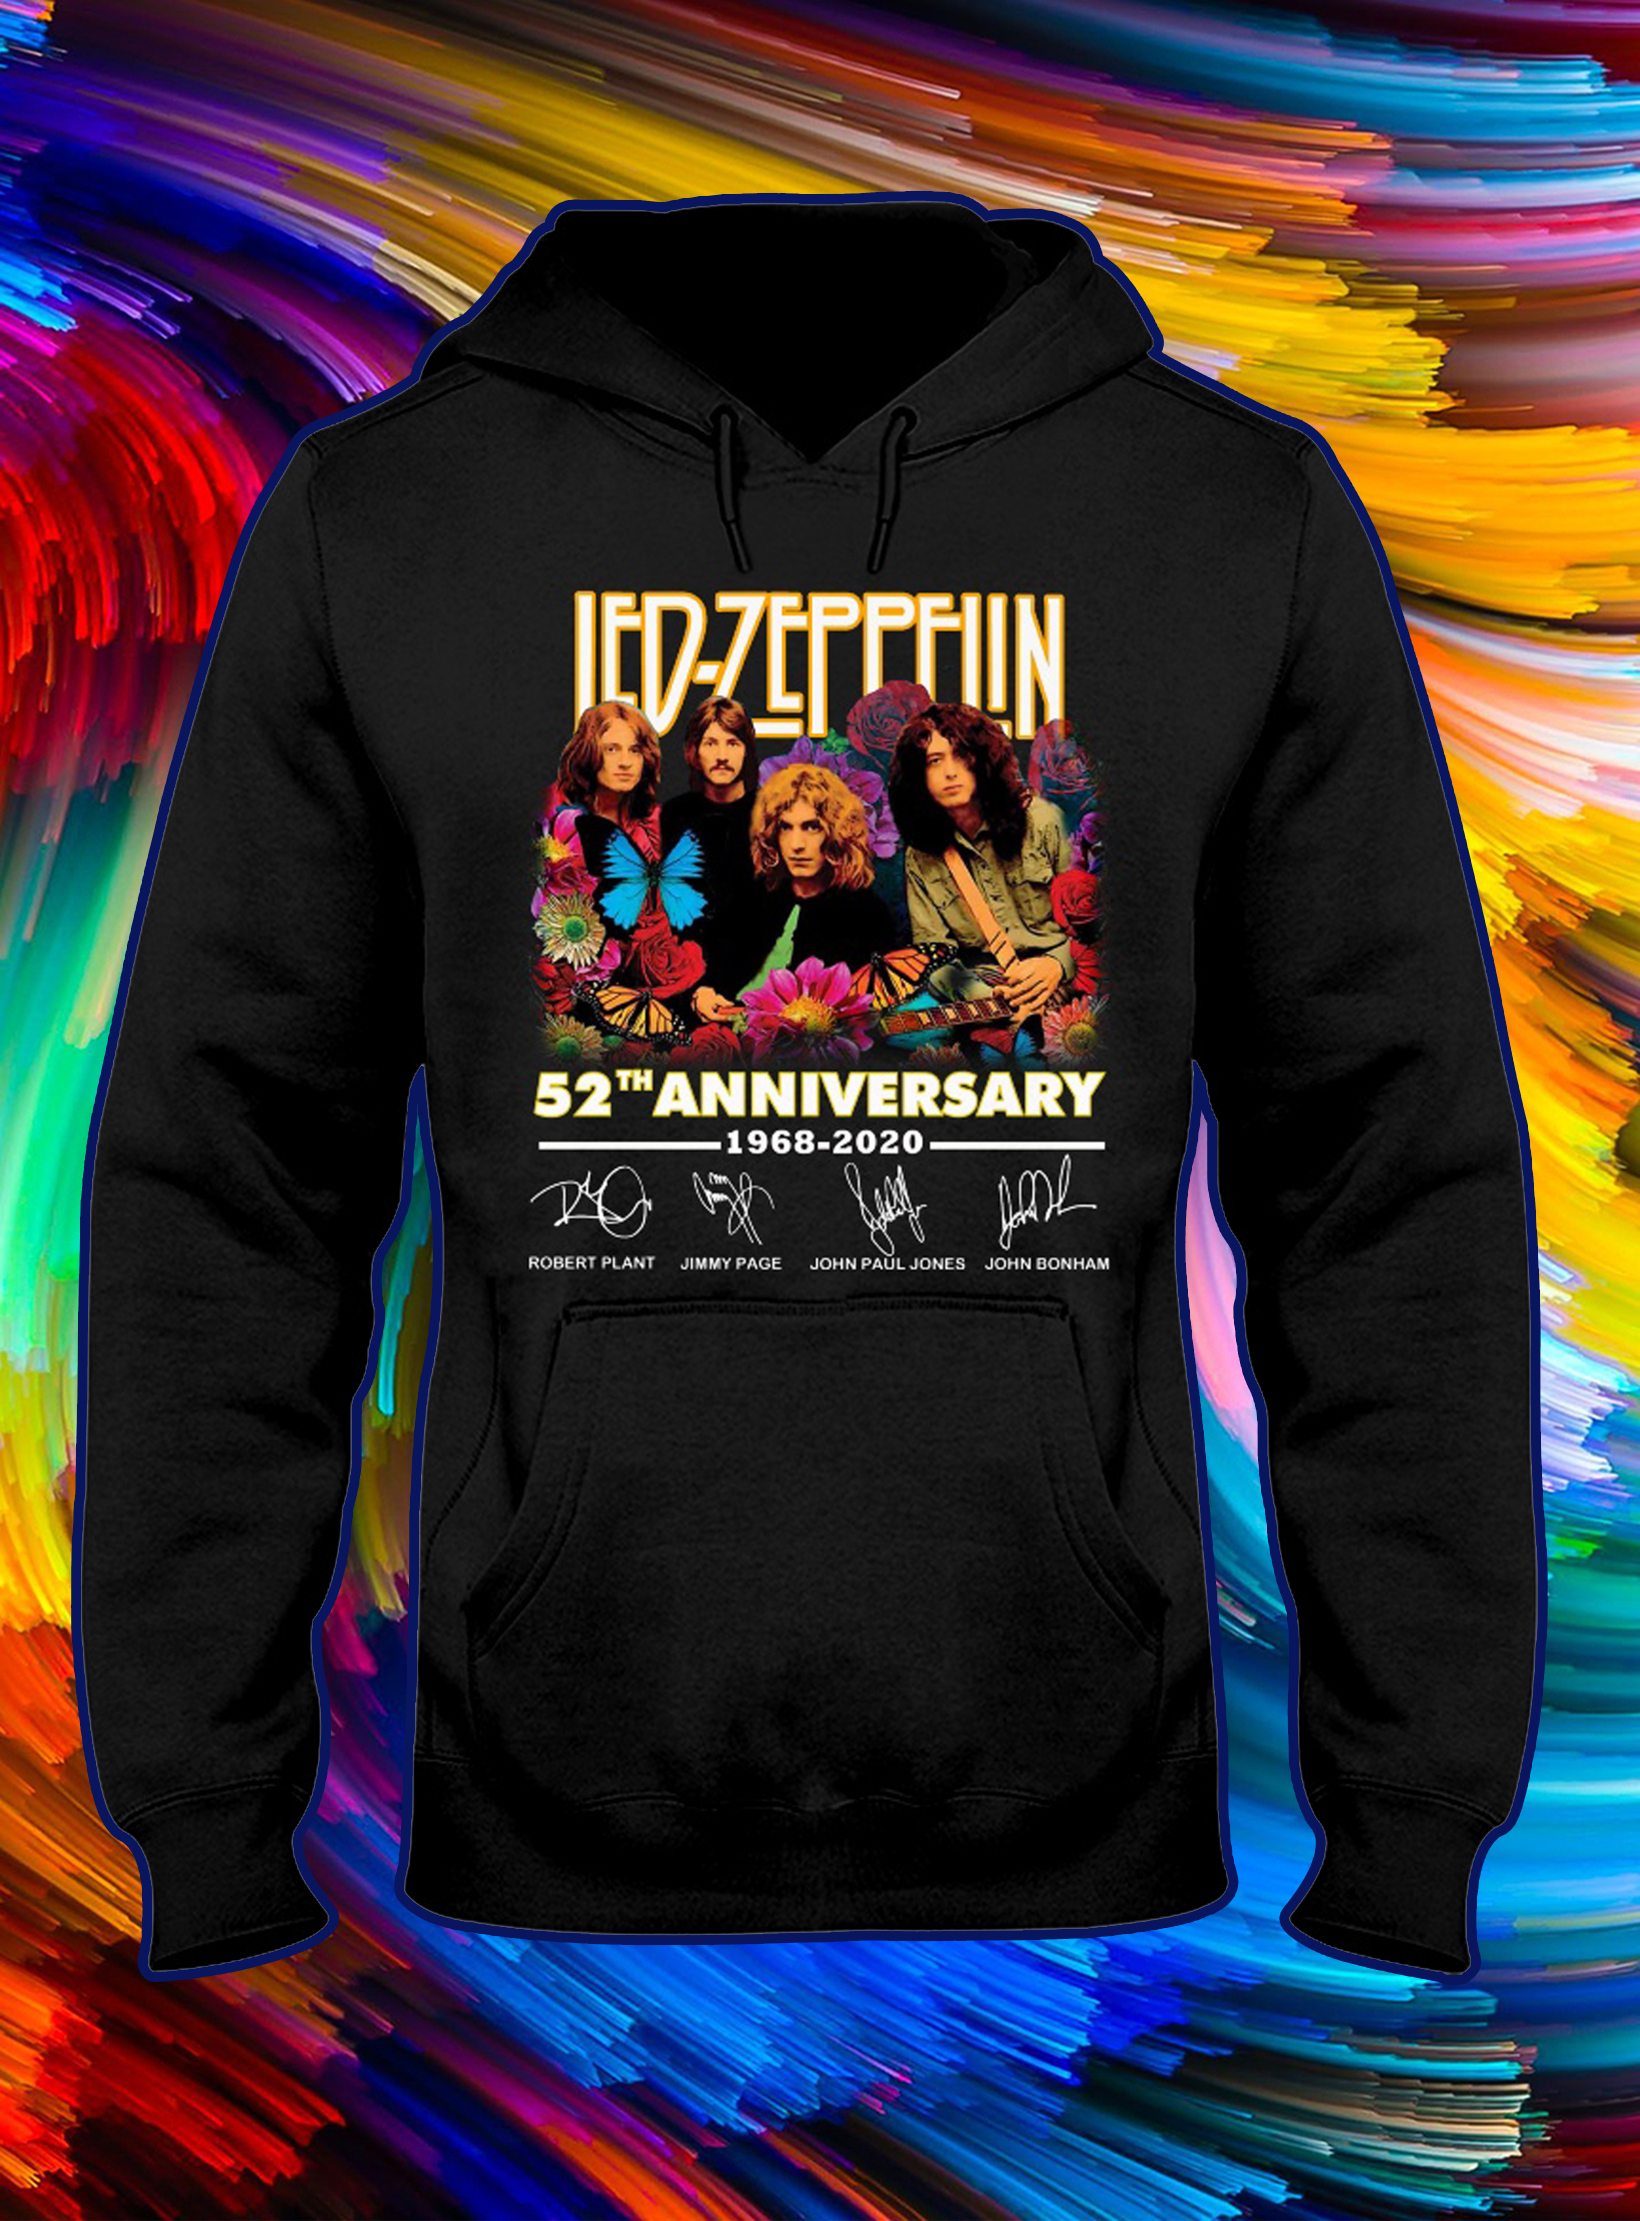 Led zeppelin 52th anniversary 1968 2020 signature hoodie